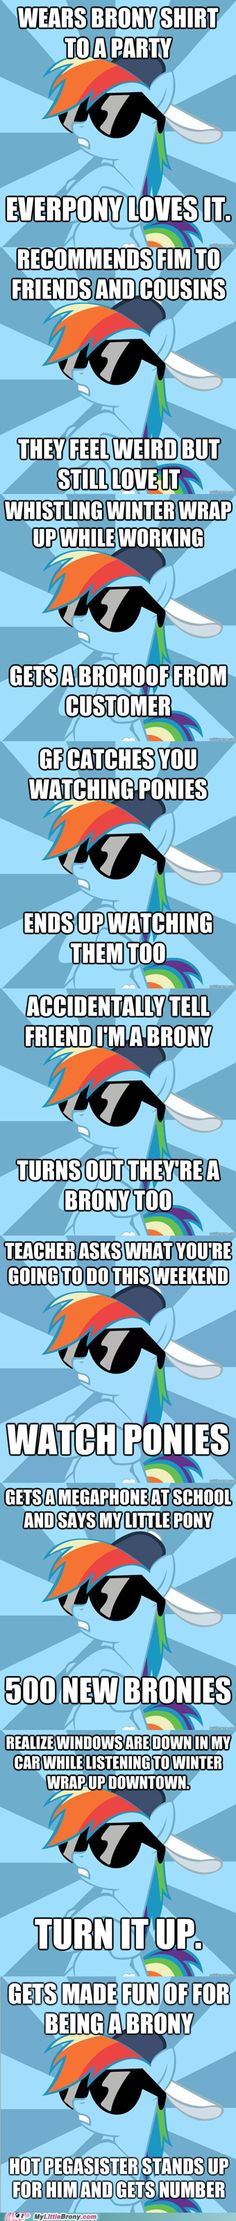 Socially Awesome Brony- Rainbowdash OHMAHGAWD THIS IS AMAZAYN!! haha hot pegasister